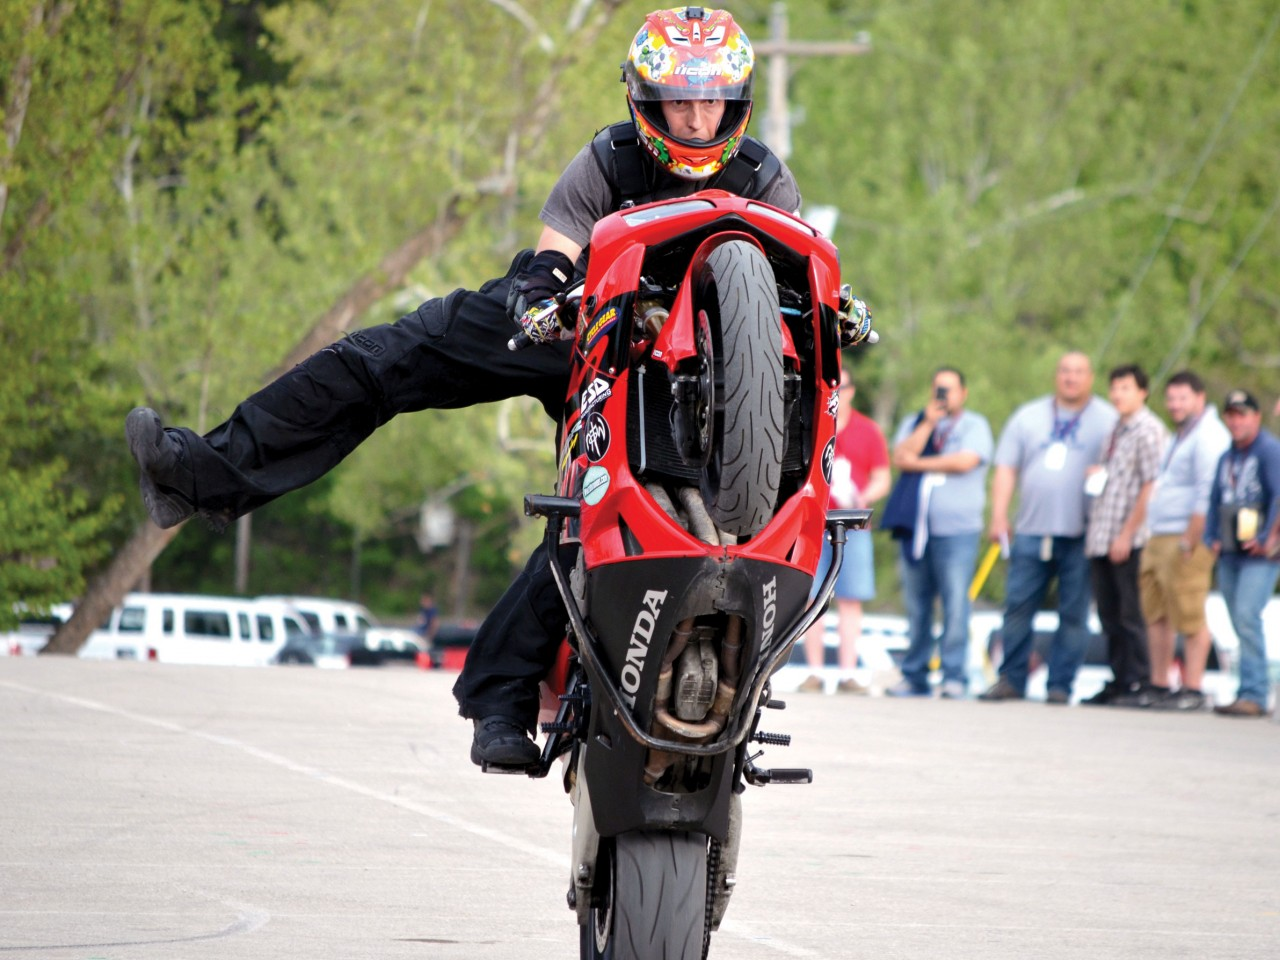 Christian stunt rider may appear on 'America's Got Talent'